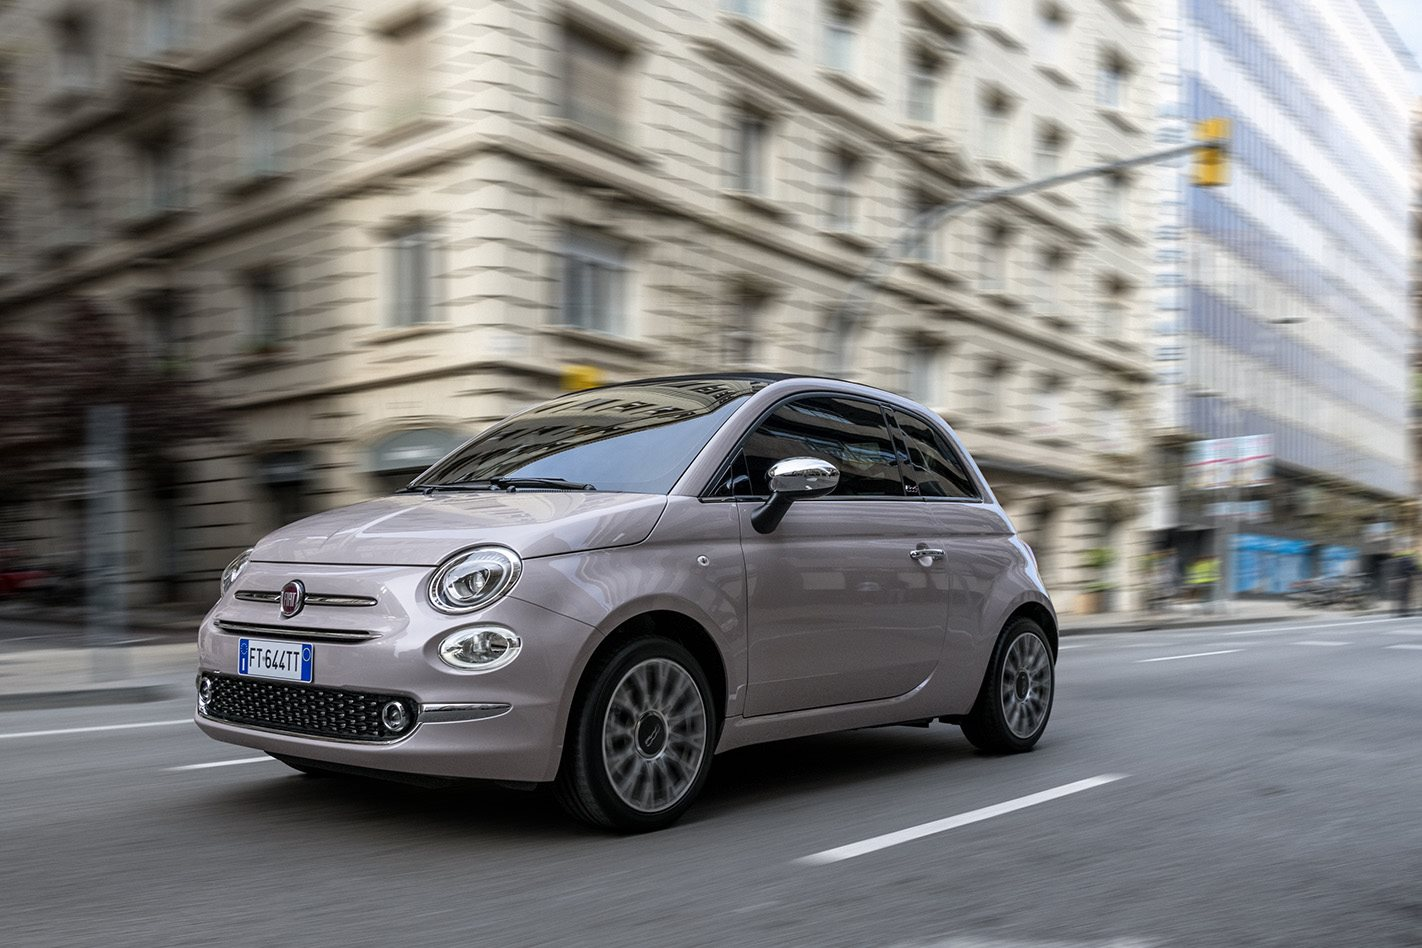 Fiat 500 Abarth 595 2020 Review